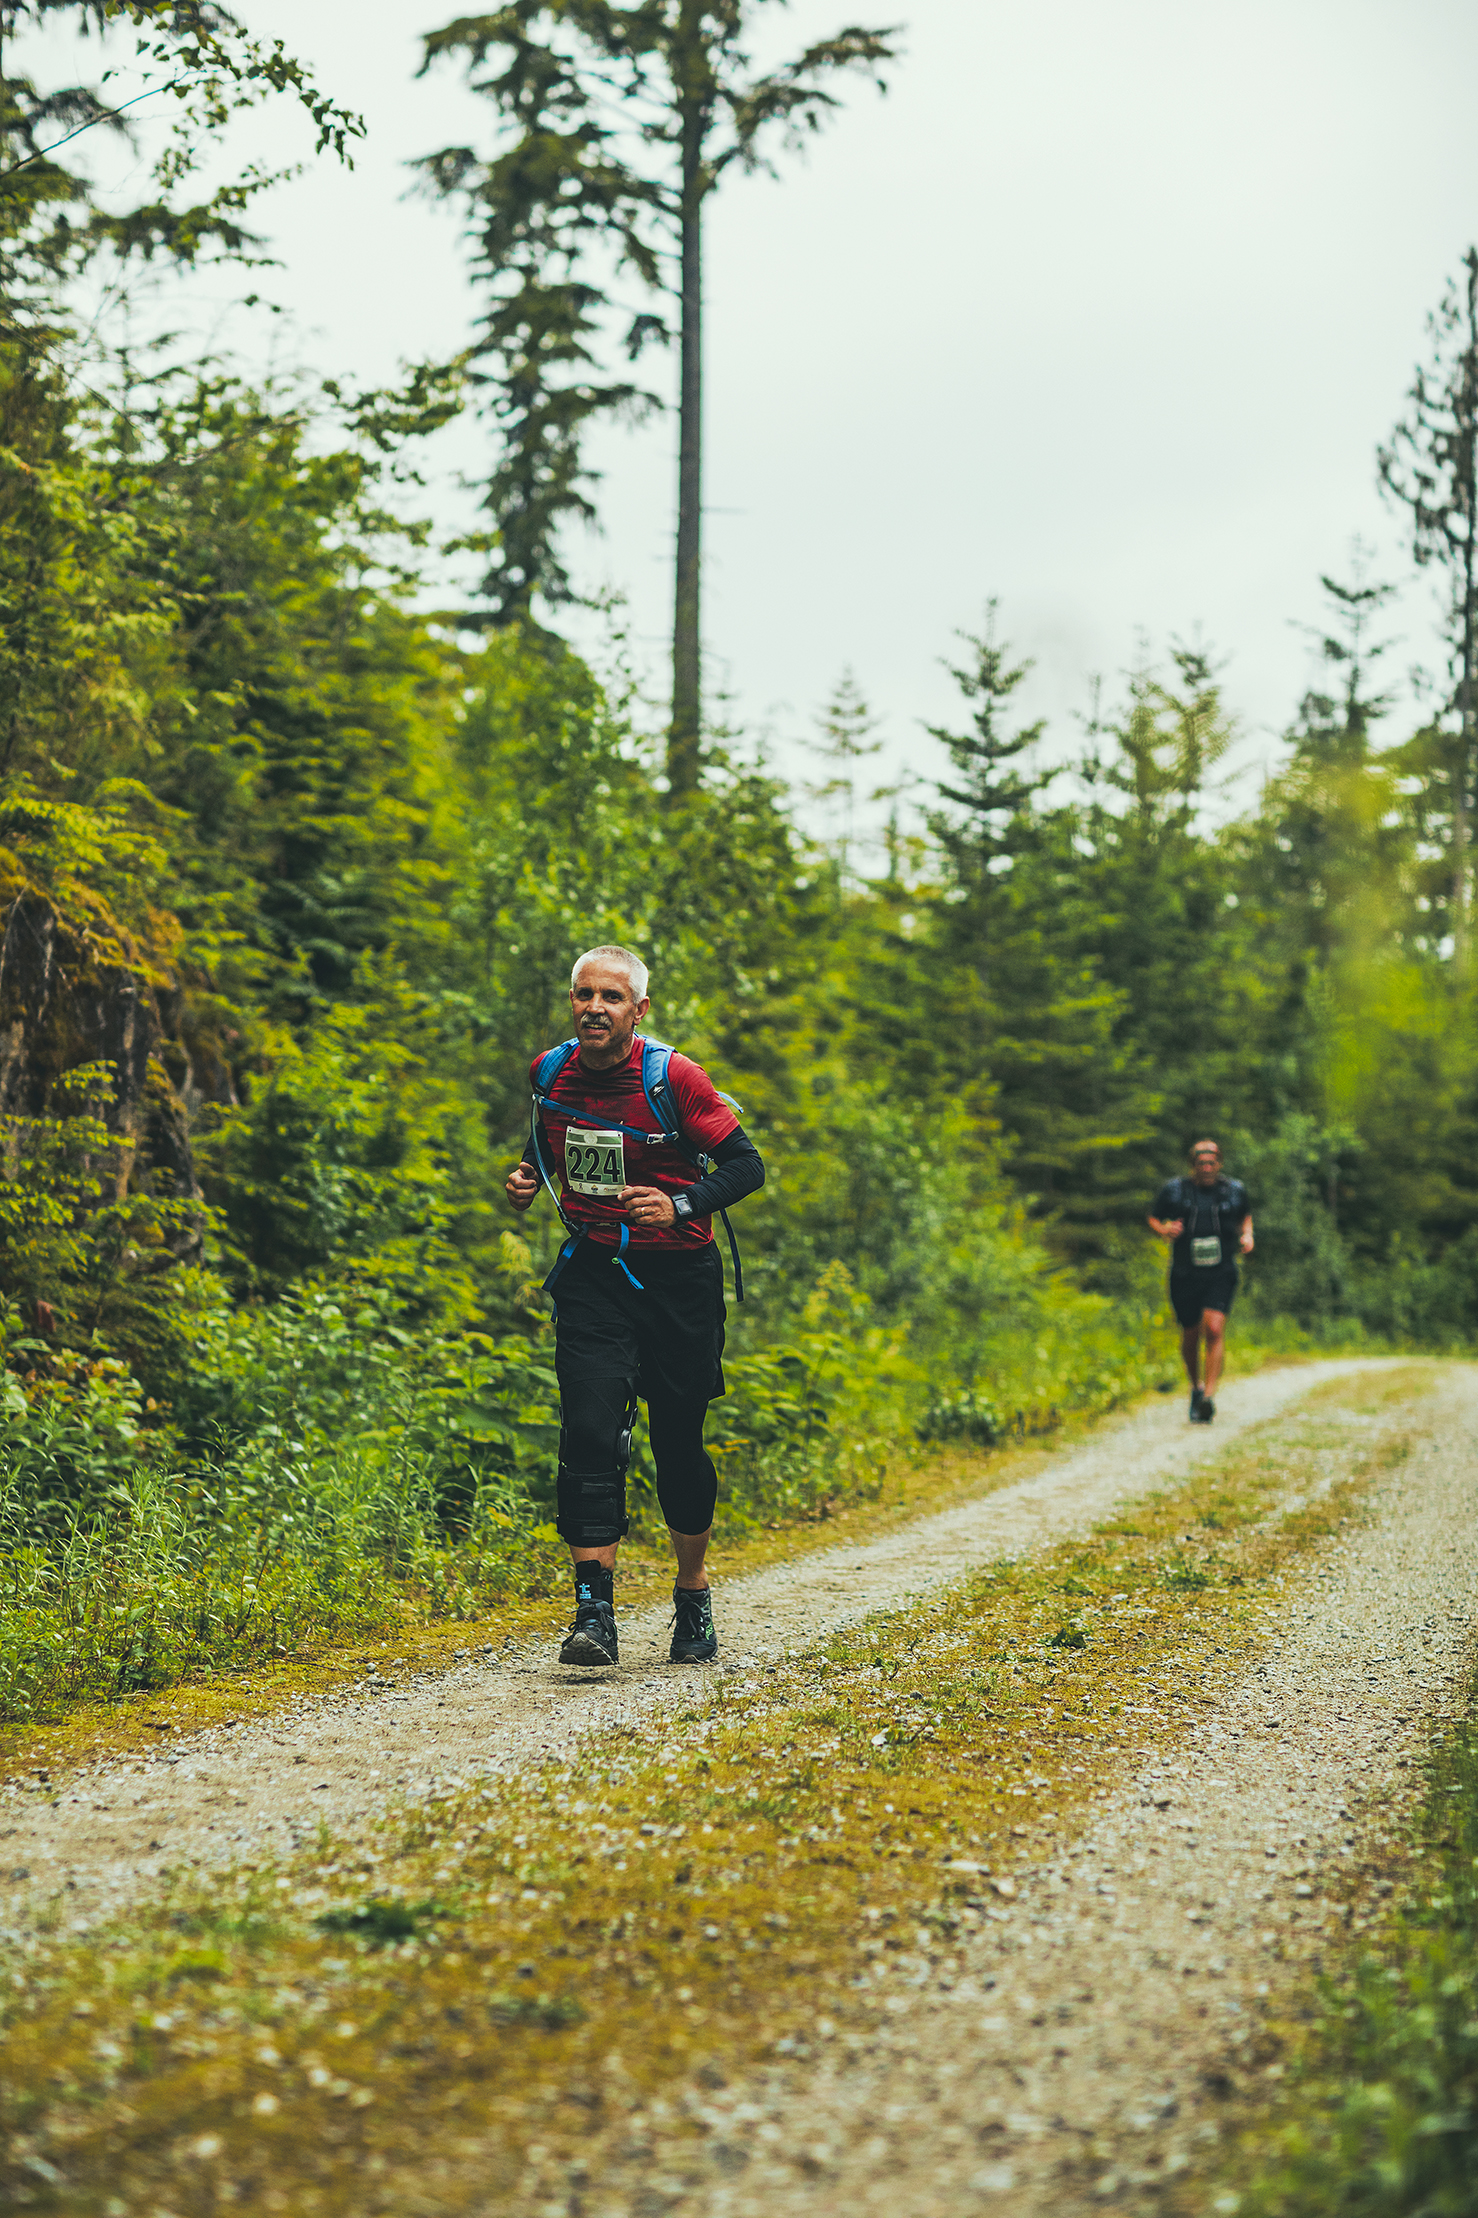 Fraser Valley Trail Races - Bear Mountain - IMG_1738 by Brice Ferre Studio - Vancouver Portrait Adventure and Athlete Photographer.jpg